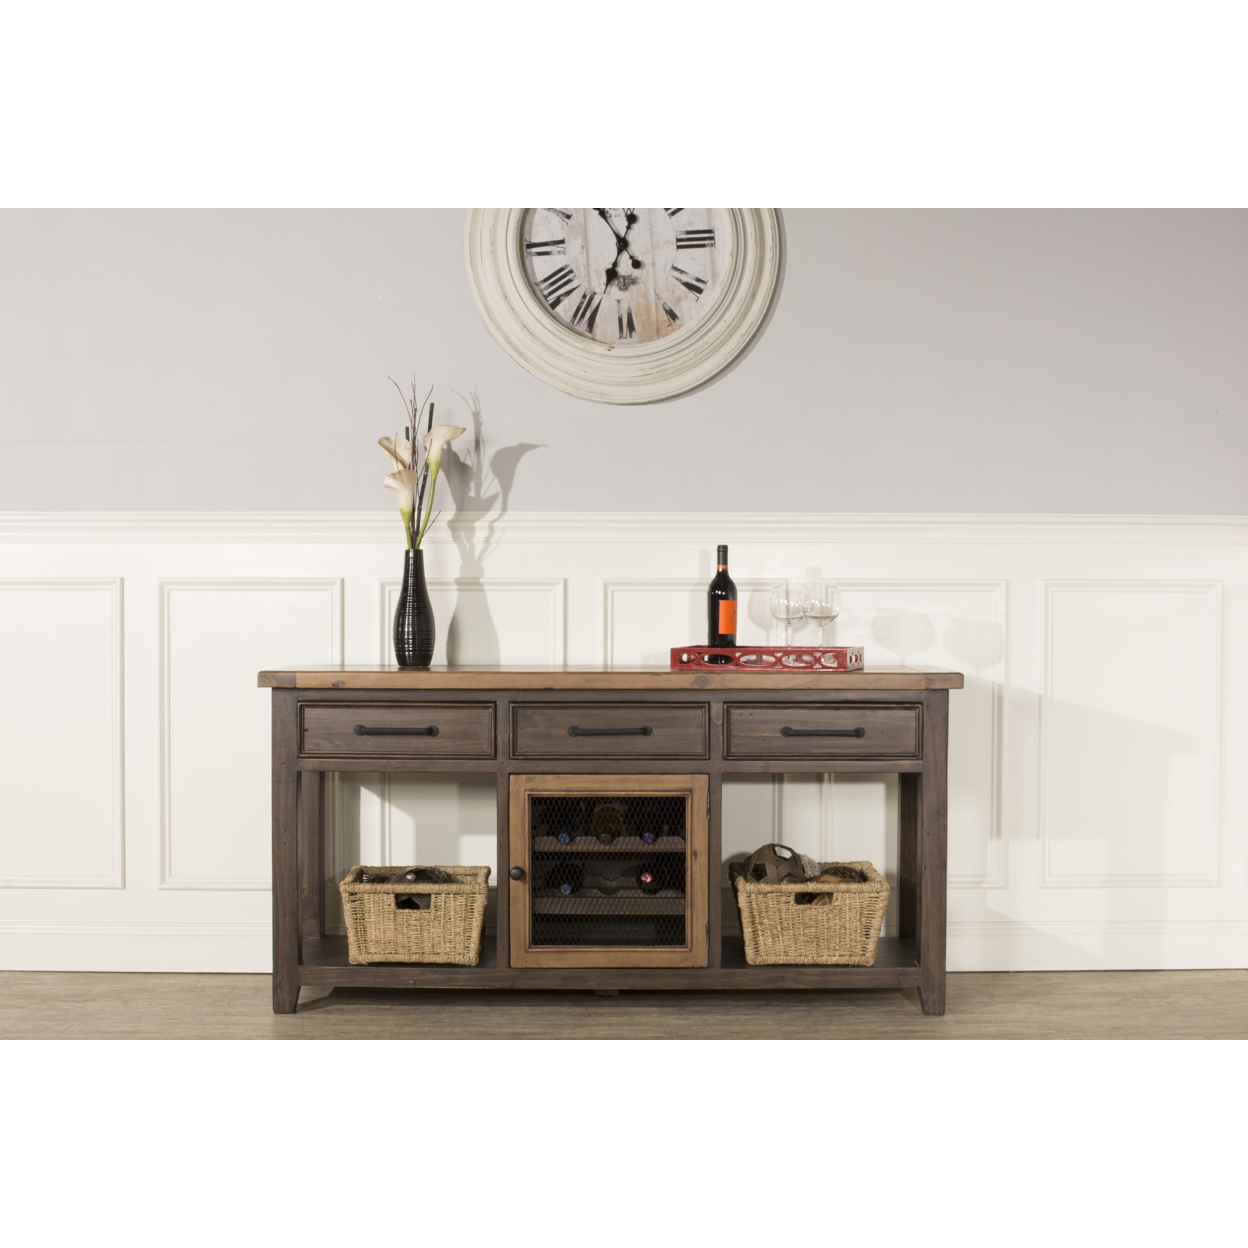 Tuscan Retreat ? Sofa Table With Wine Rack And Two (2) Baskets